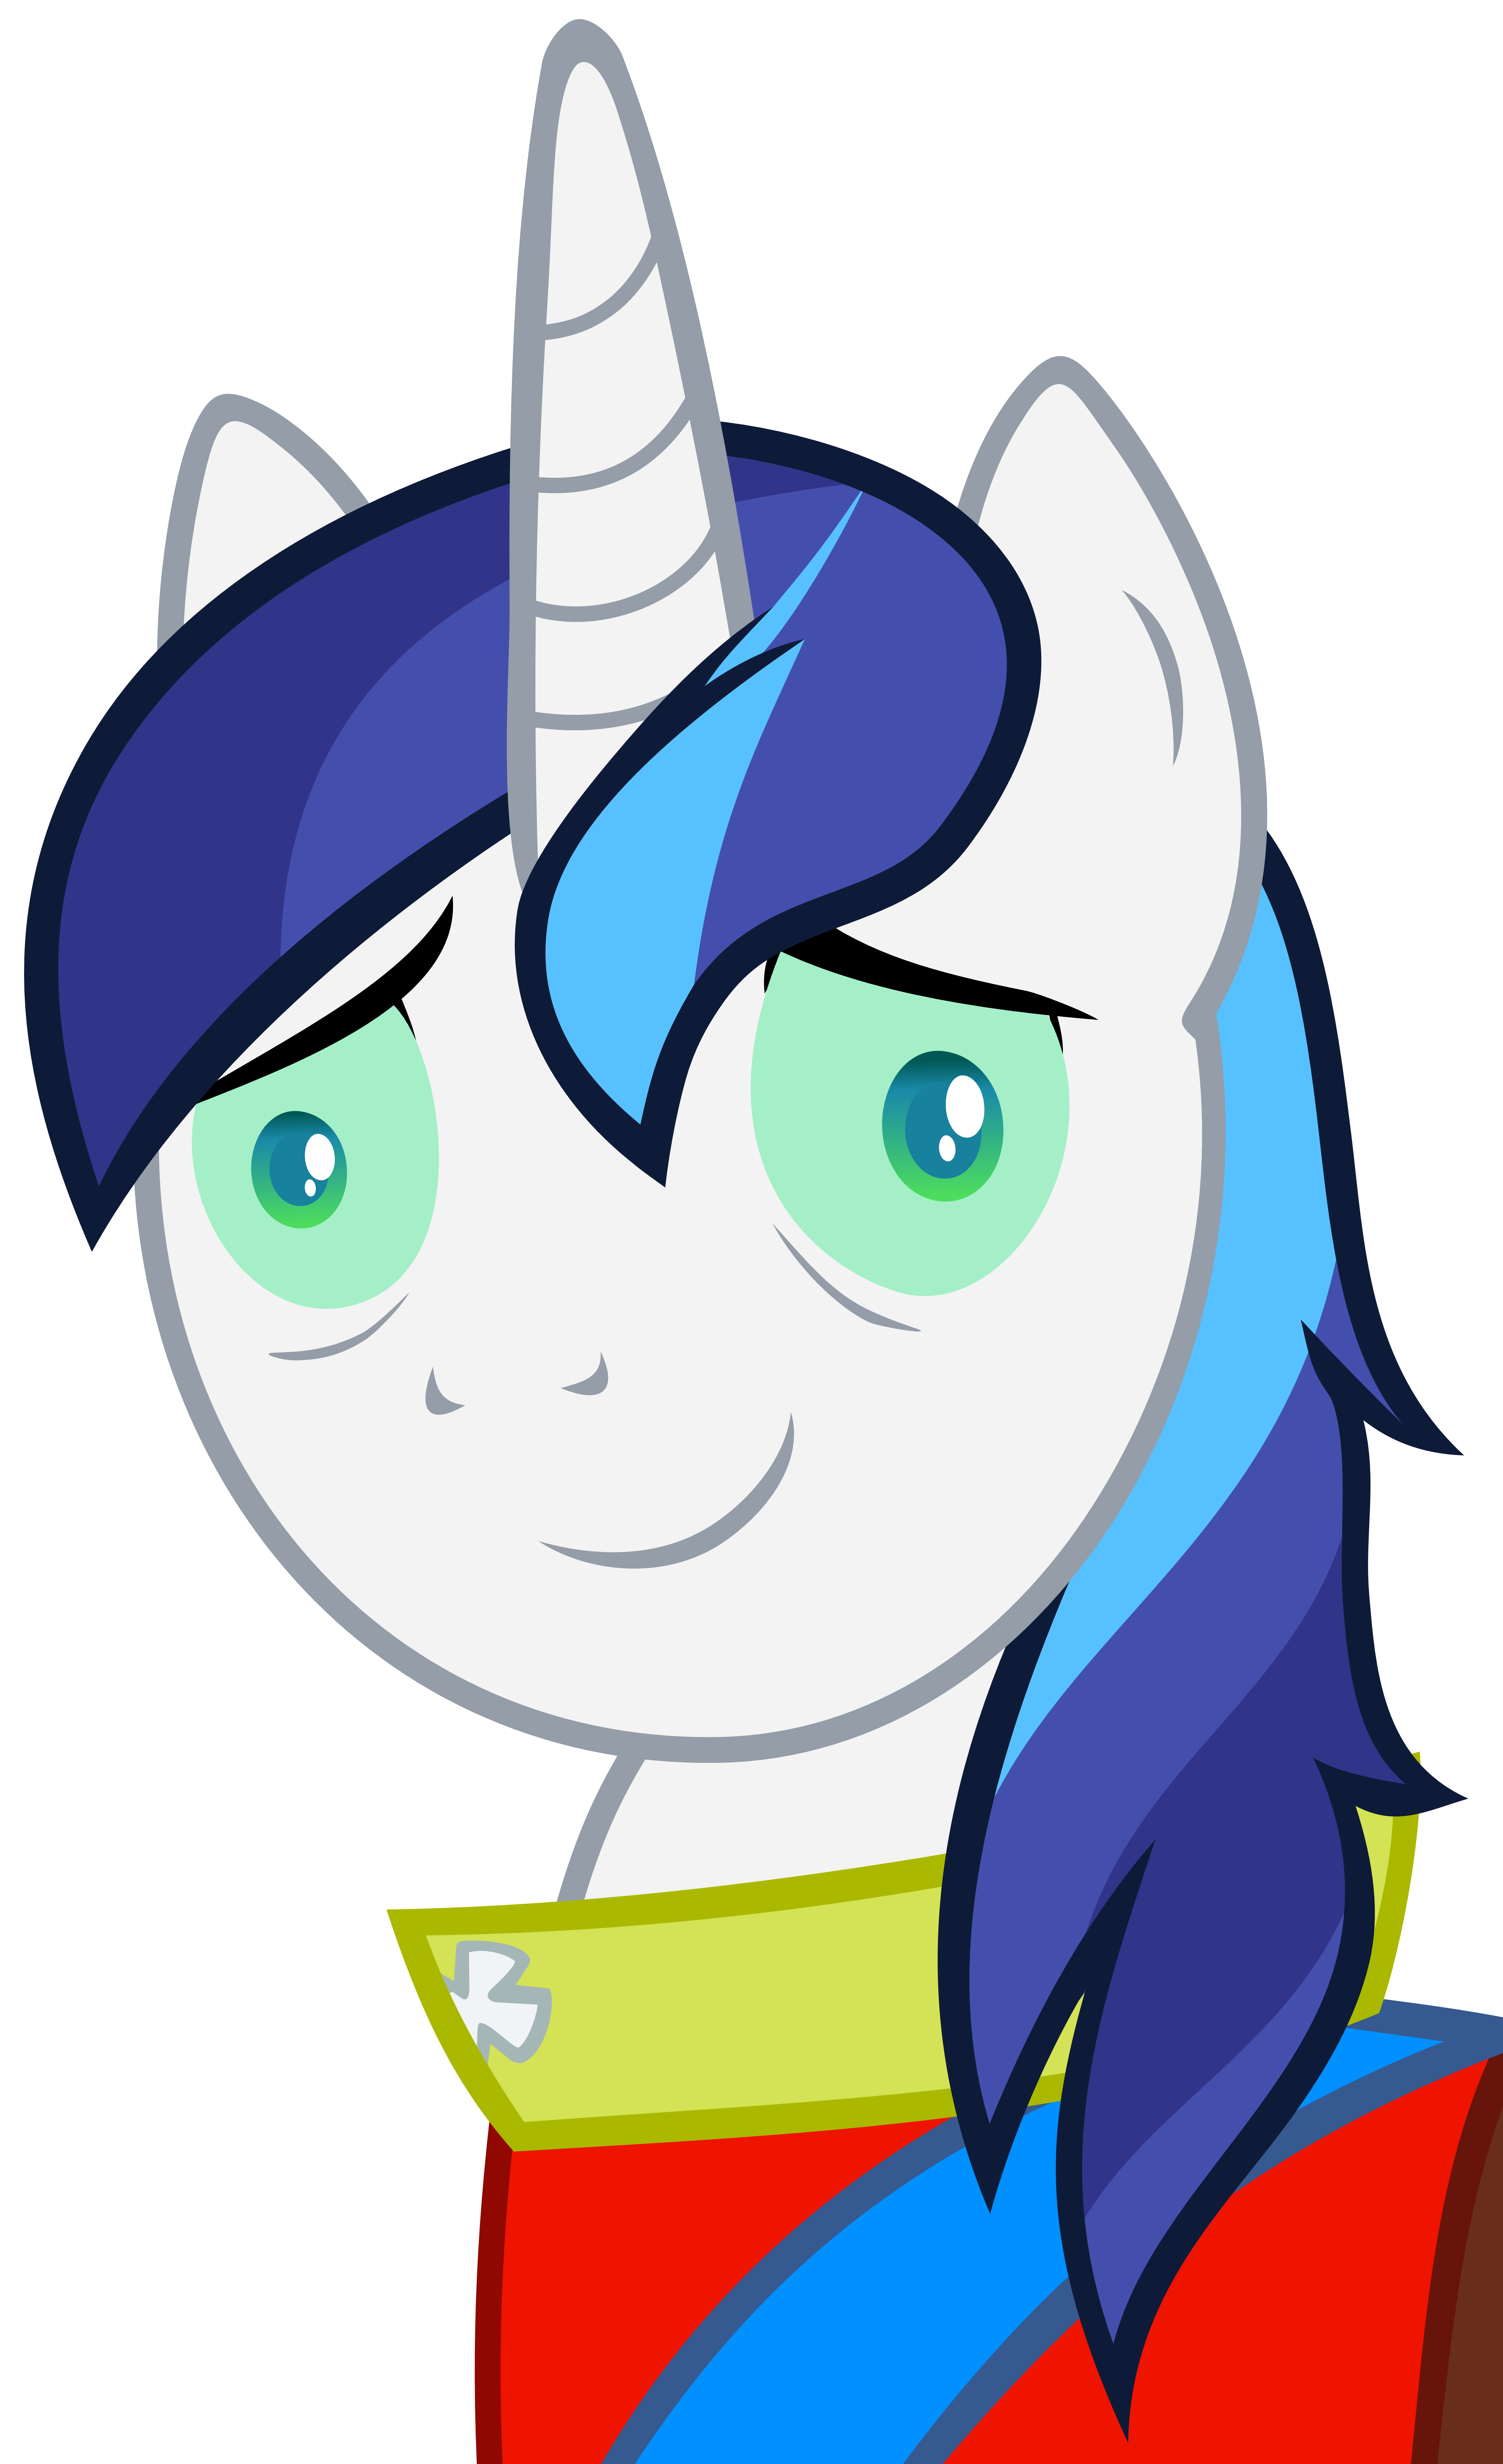 Shining Armor at his best